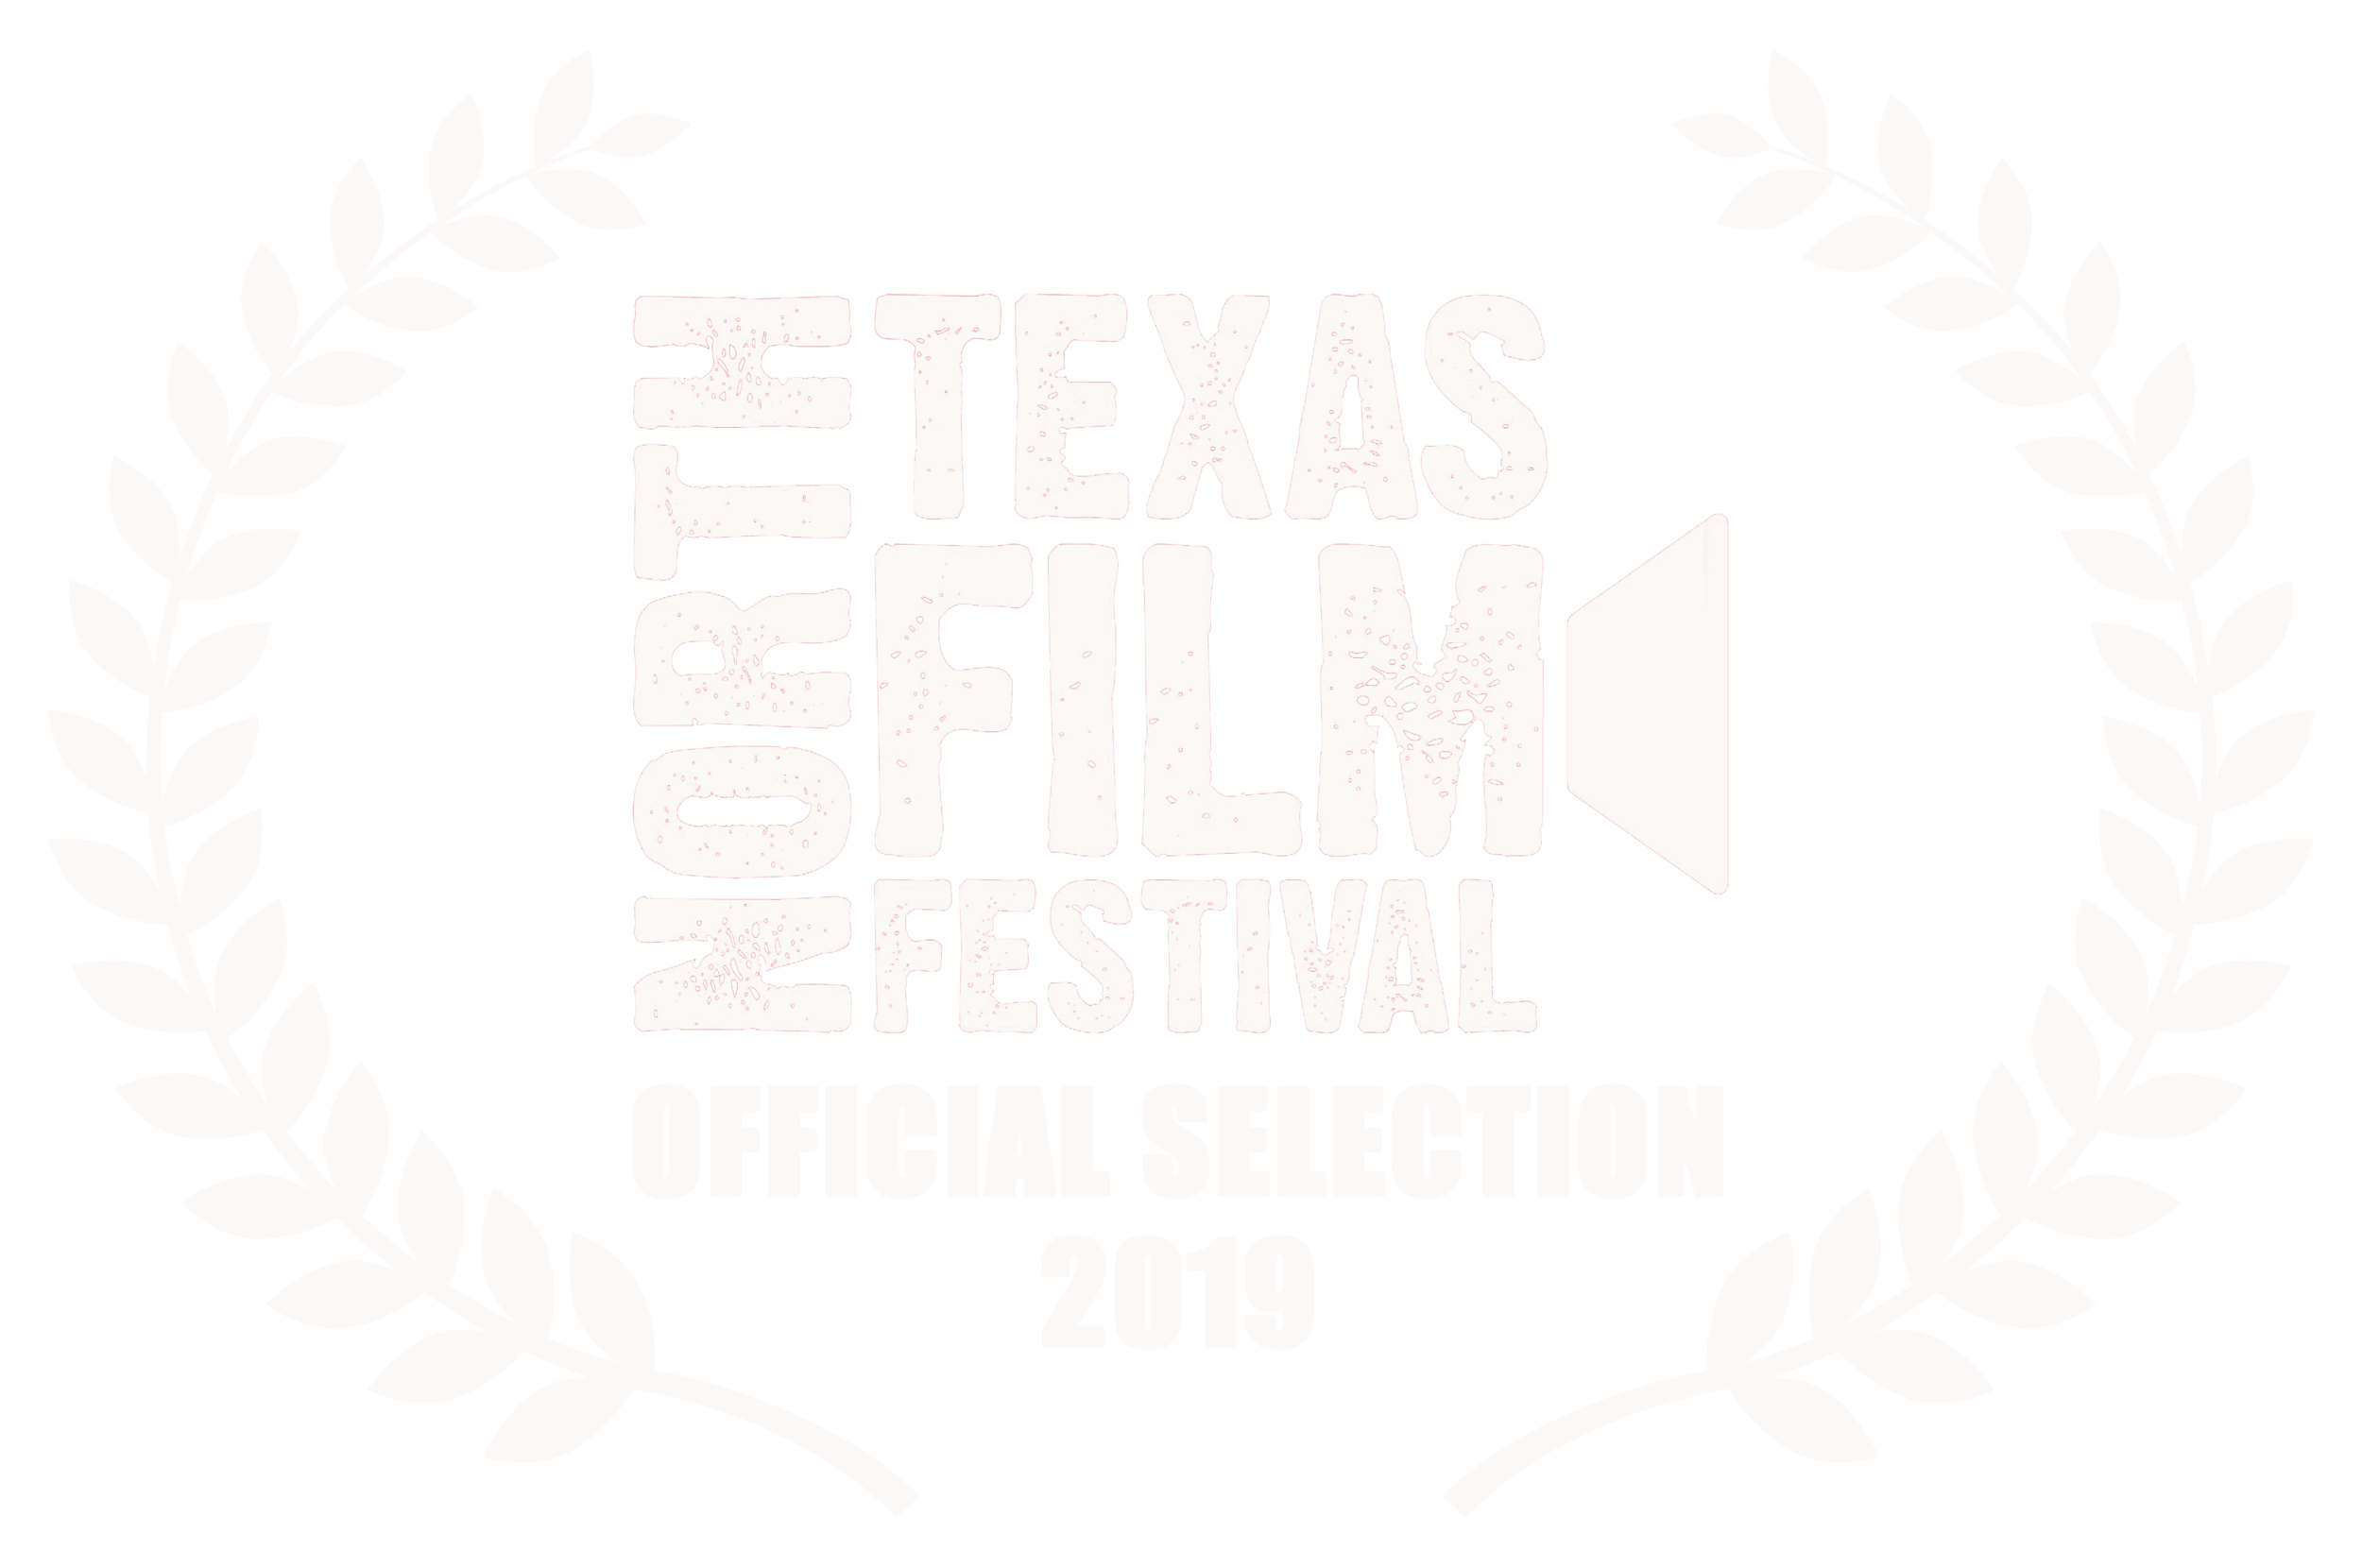 North Texas Screening - September 26-29, 2019 Astroturf returns to North Texas as the first annual NTXFF presents the best of DIFF, including Audience Award Winner, Live from the Astroturf, Alice Cooper. Special guests in attendance. Details here.